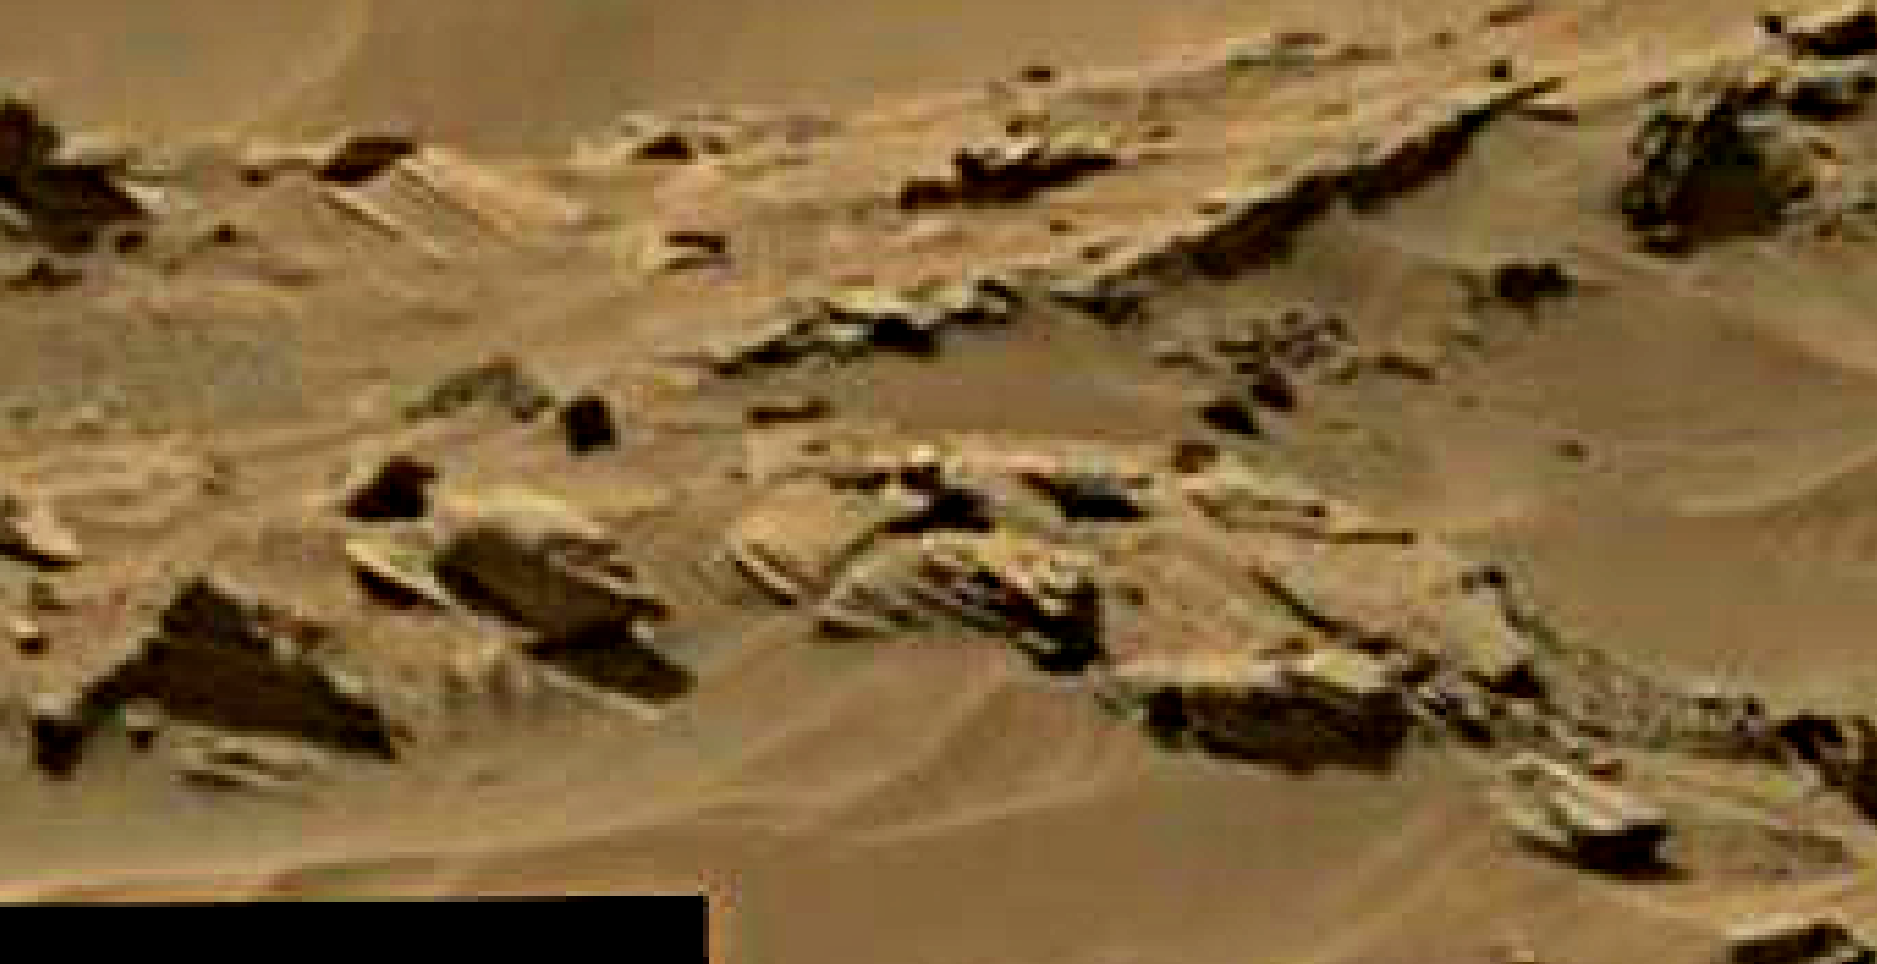 mars sol 1344 anomaly-artifacts 10 was life on mars